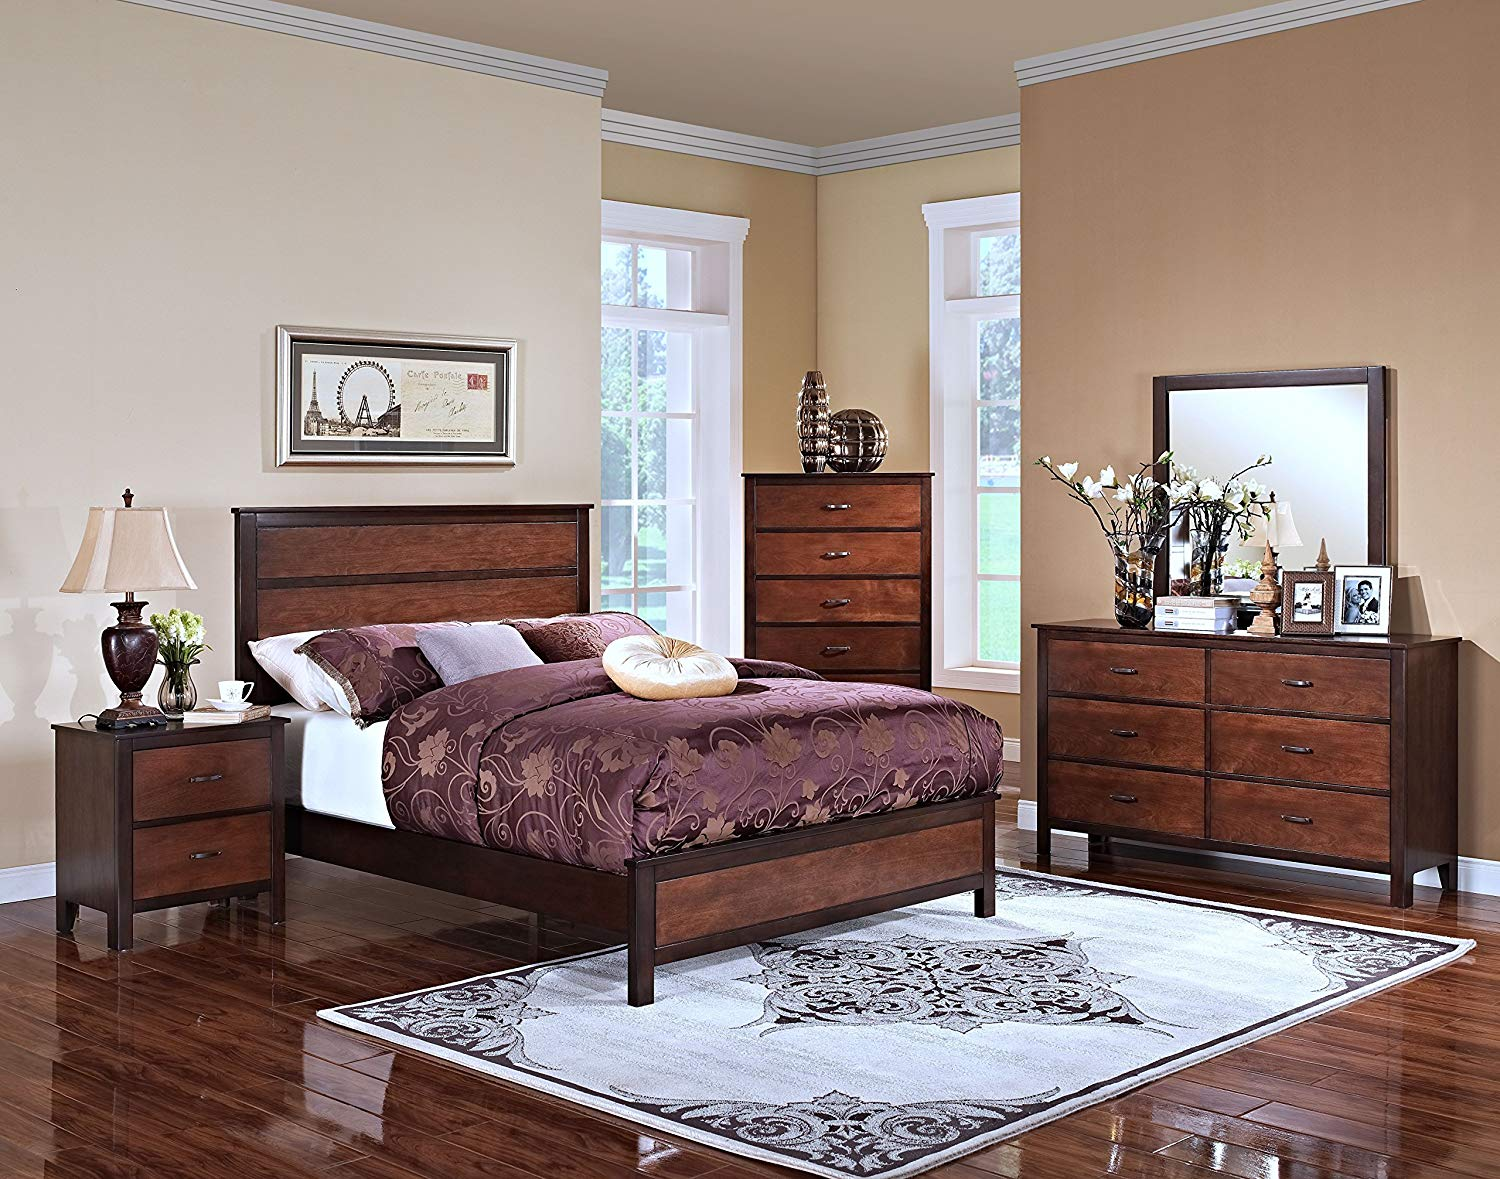 4-Piece King Bedroom Set by New Classic Furniture